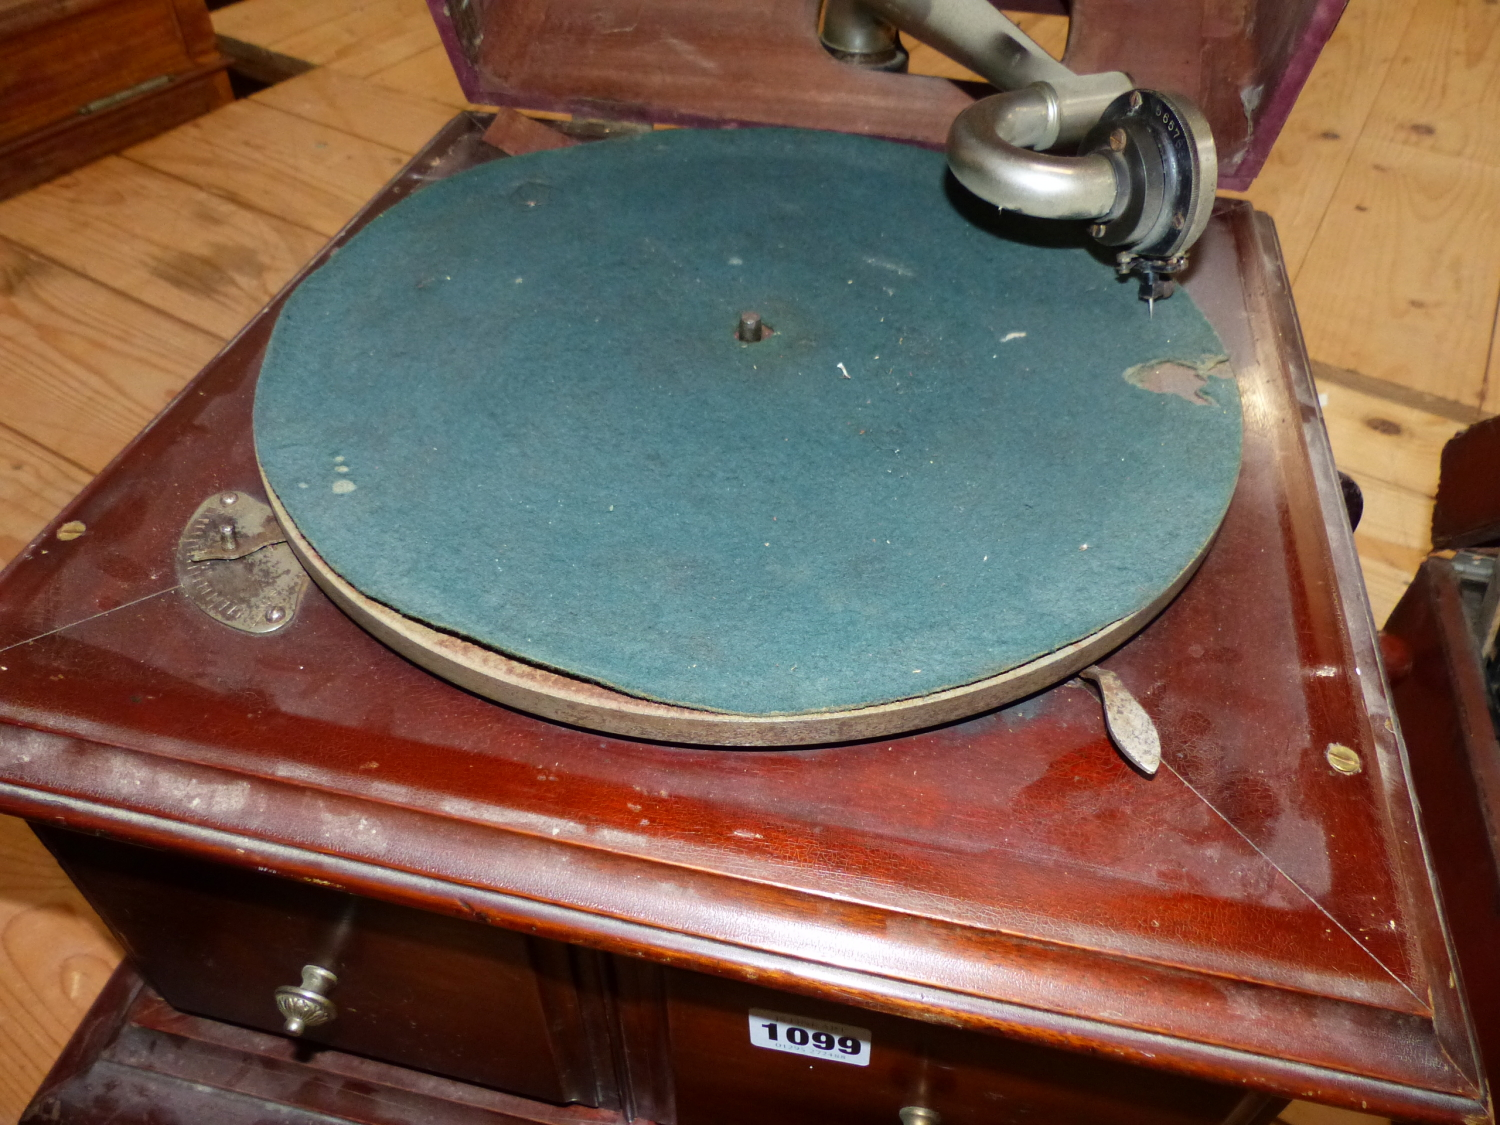 Lot 1099 - A MAHOGANY CASED GRAMOPHONE Co. Ltd. WIND UP GRAMOPHONE, DOORS BELOW THE GREEN BAIZE TOPPED